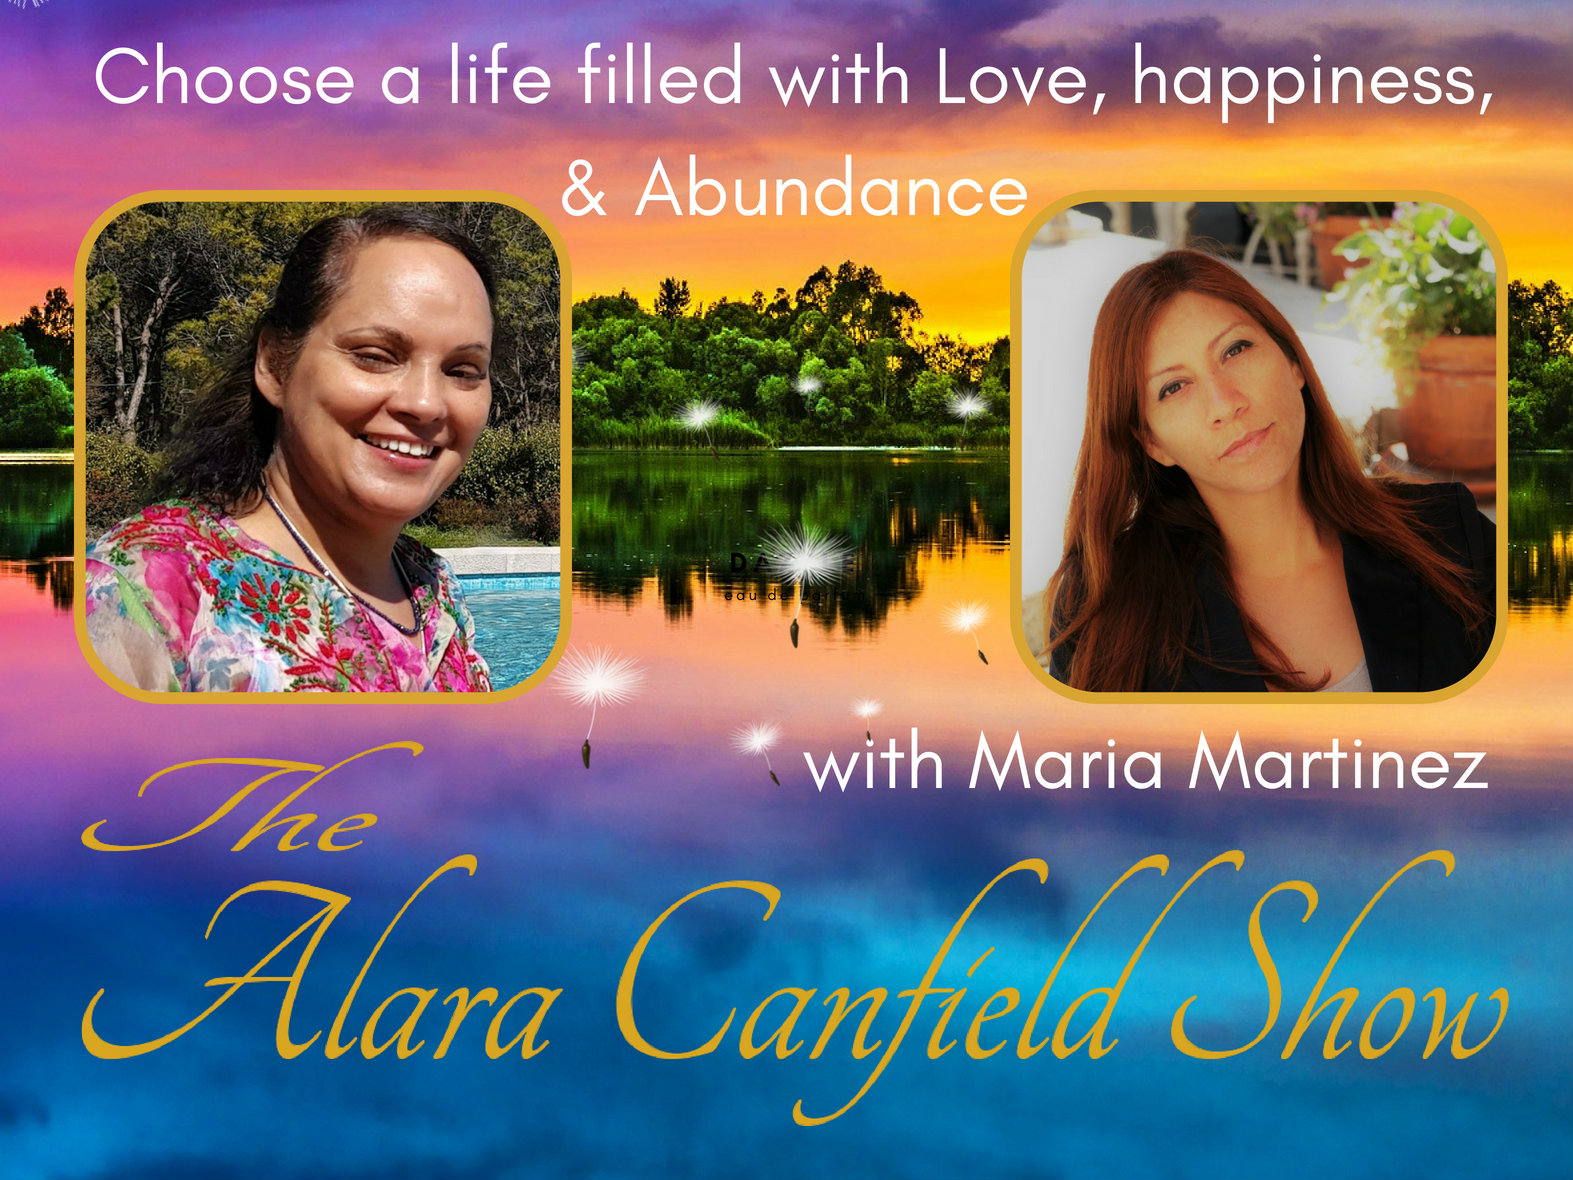 Choose a life filled with Love, happiness, & Abundance with Maria Martinez